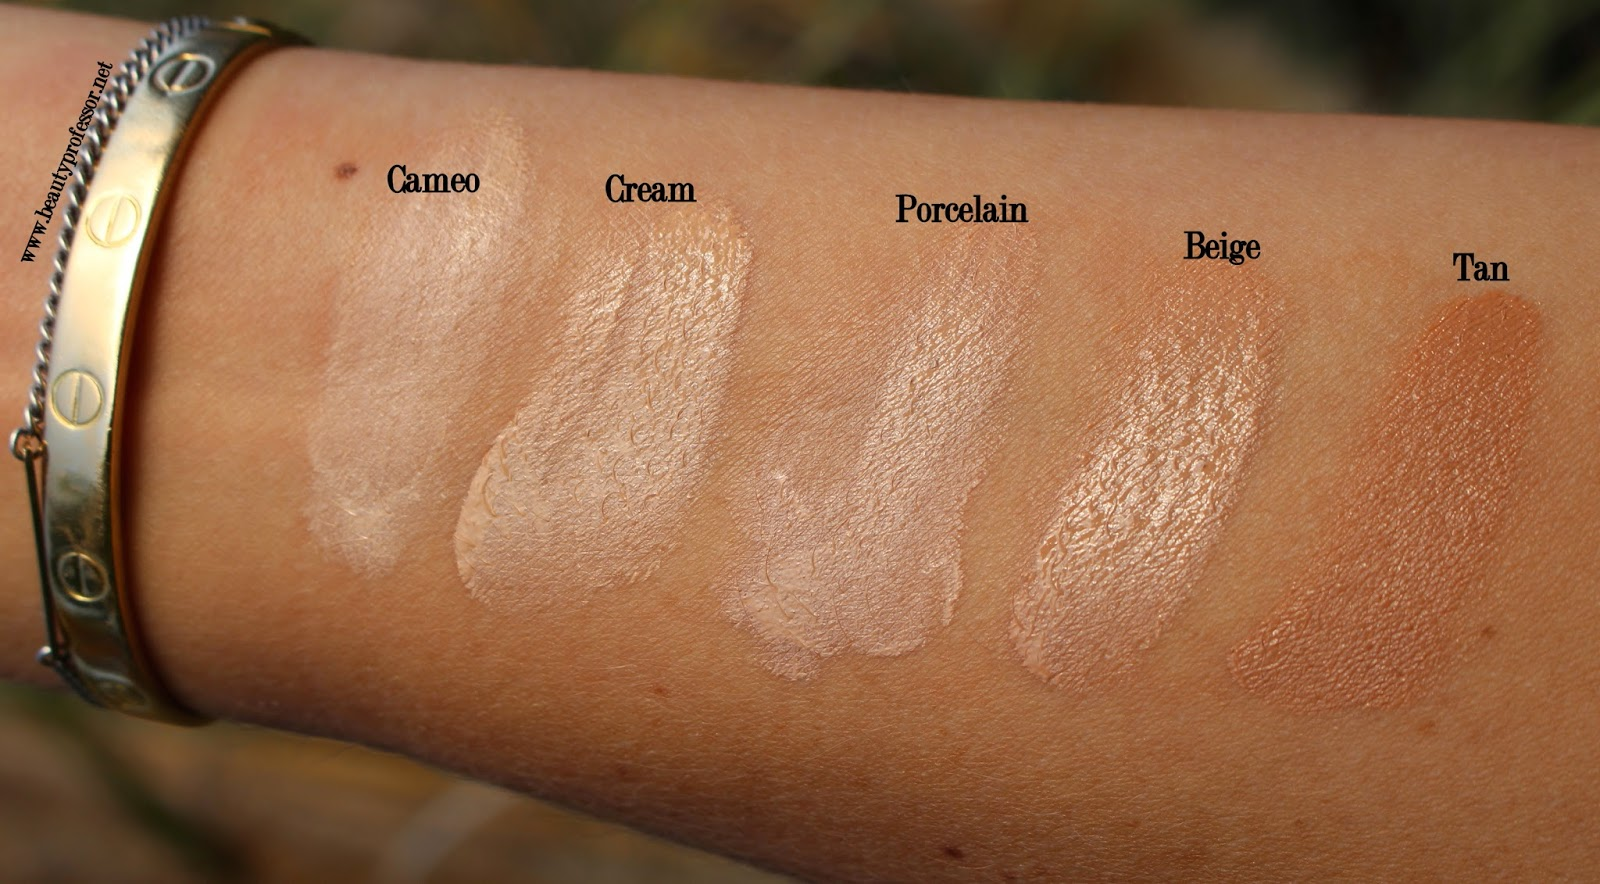 zelens youth glow foundation swatches